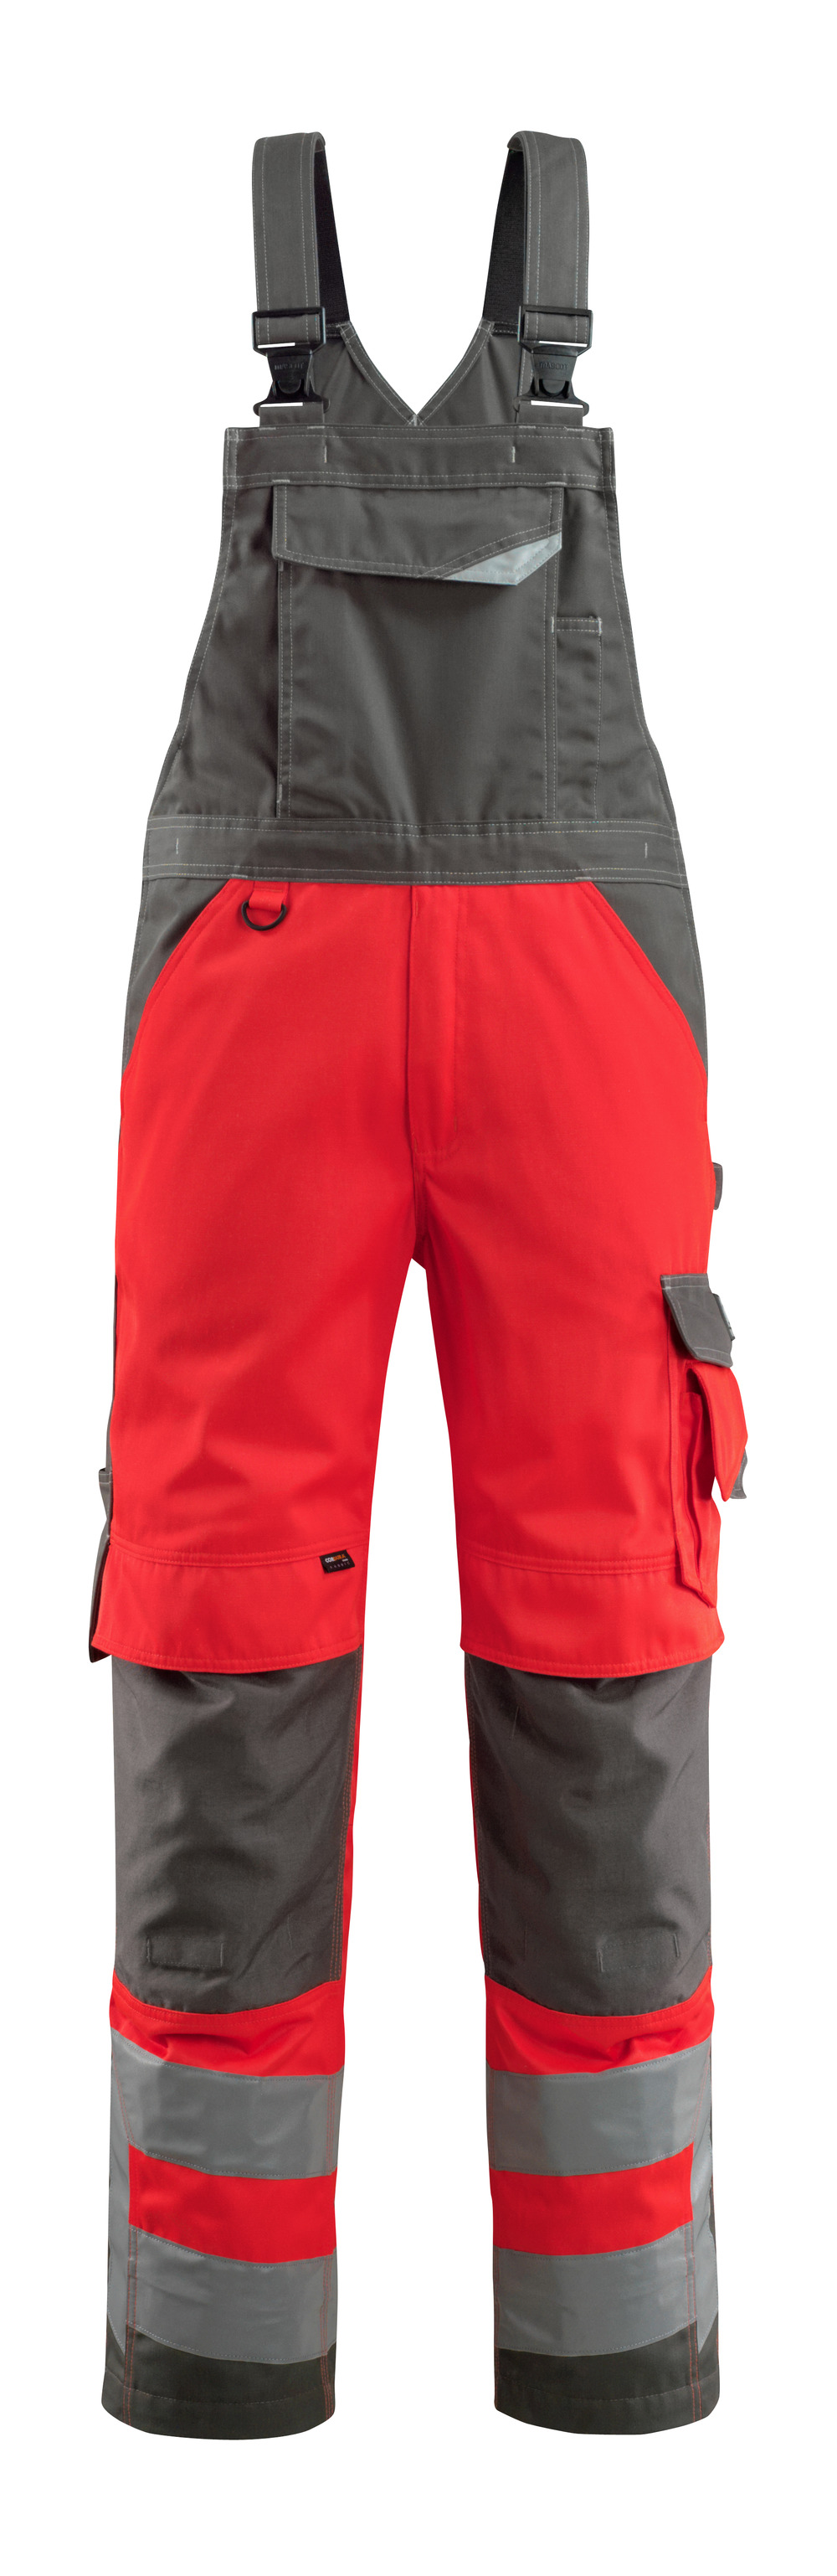 Mascot Newcastle amerikaanse overall hi-vis rood/donkerantraciet